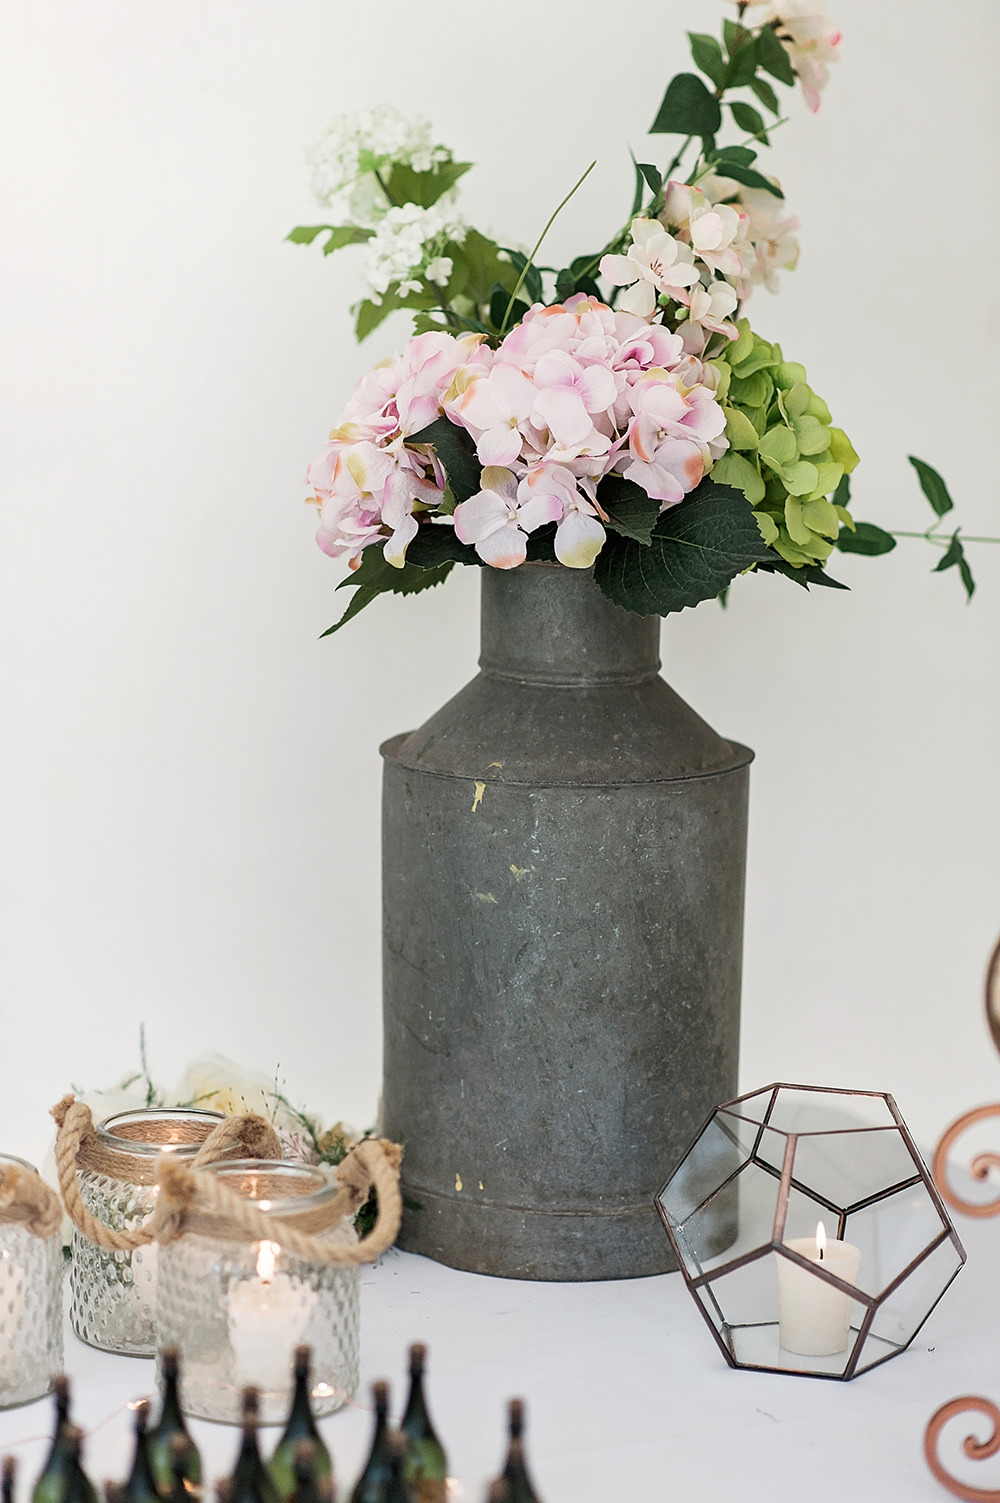 Milk Churn Floral Arrangement Geometric Candle Holiday Edmondsham House Wedding Darima Frampton Photography